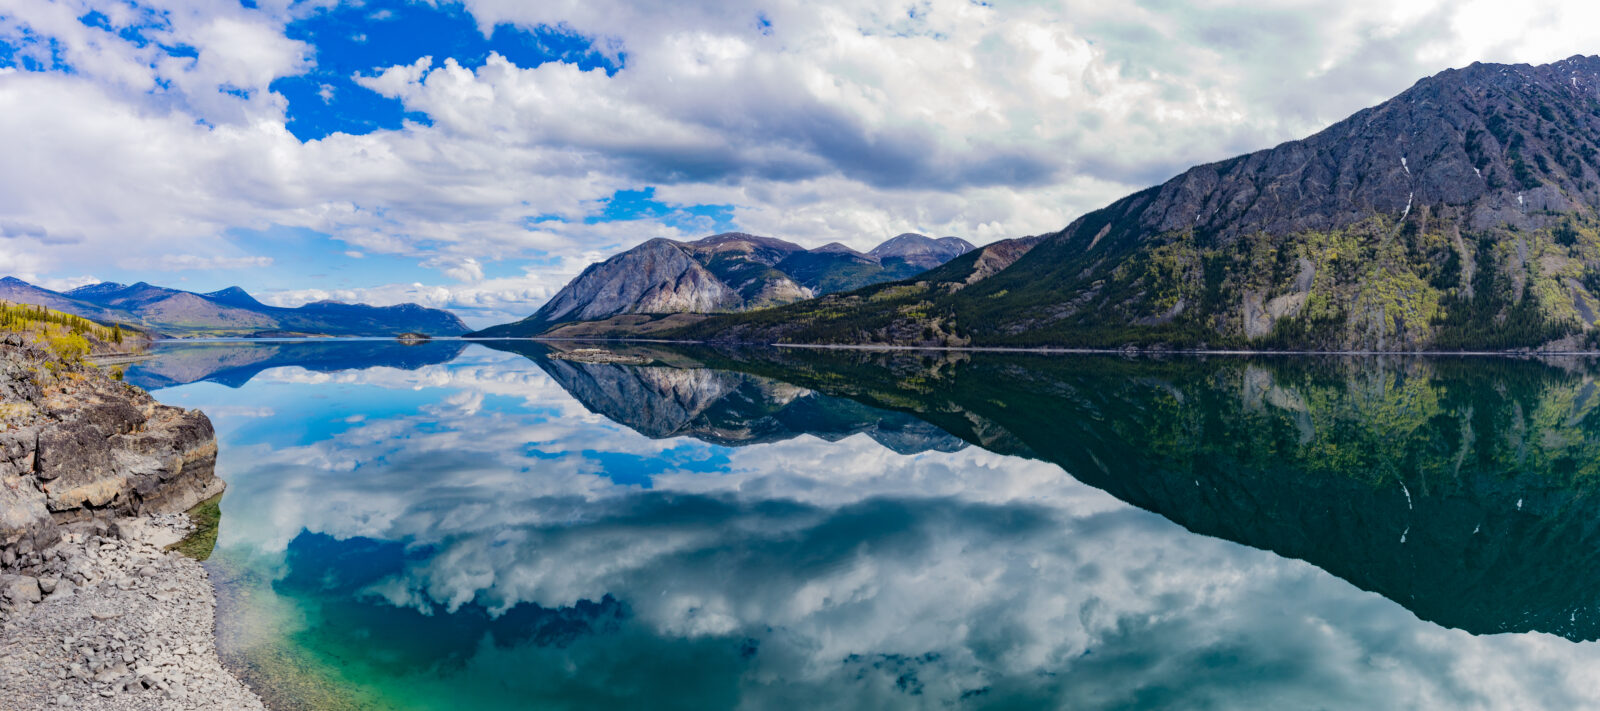 Panoramic view of calm water of Windy Arm of Tagish Lake near Carcross, Yukon Territory, Canada, with surrounding mountains mirrored on lake surface